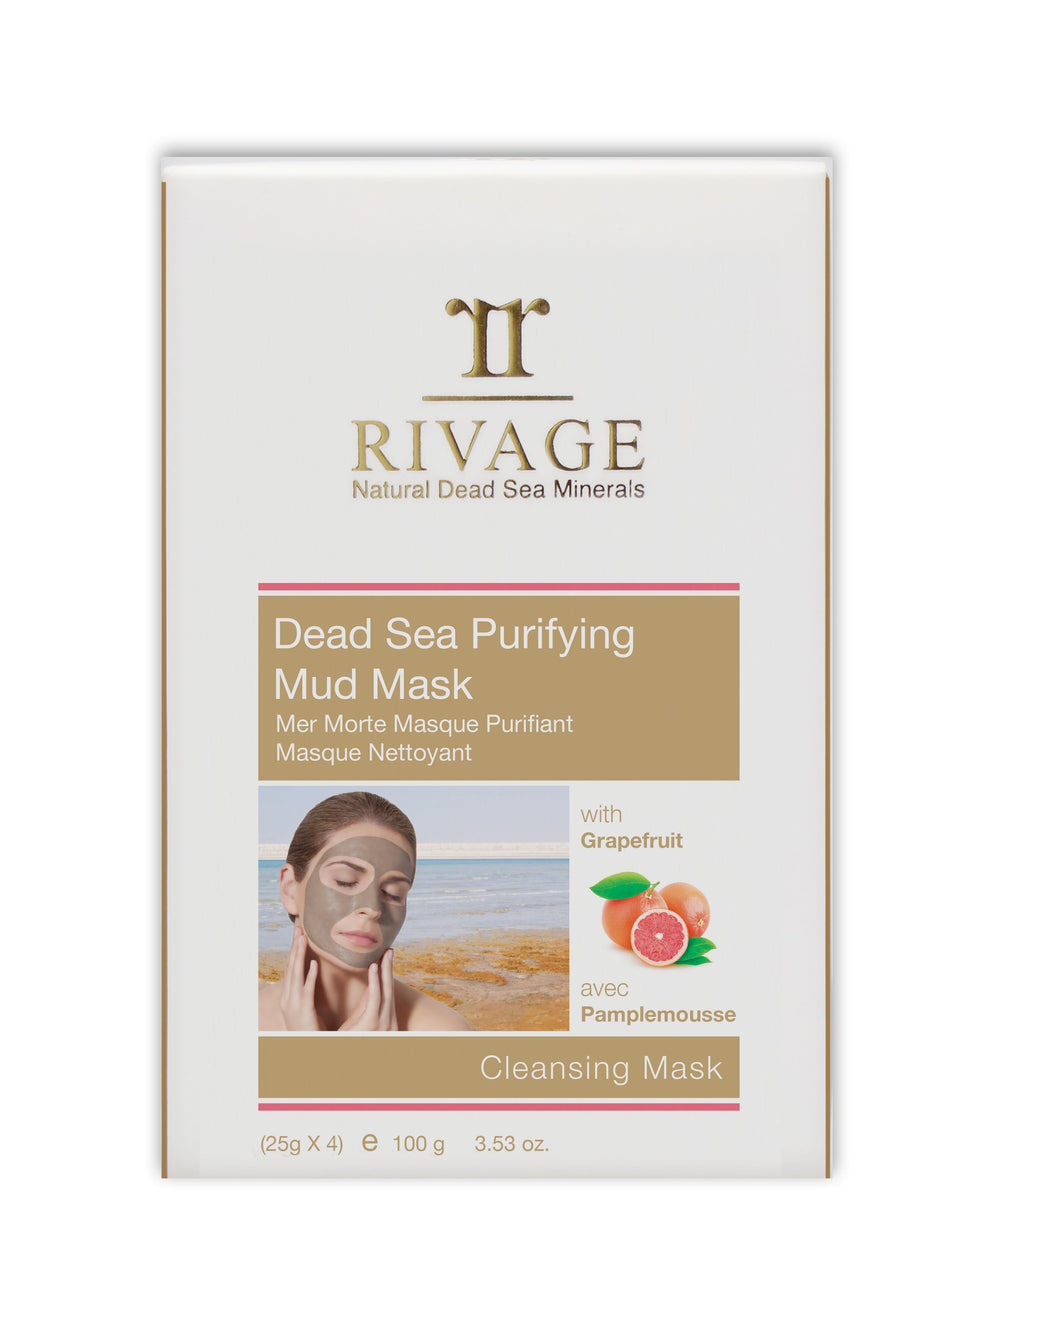 Dead Sea Purifying Mud Mask / Cleansing Mask  - The Bath Club, INC